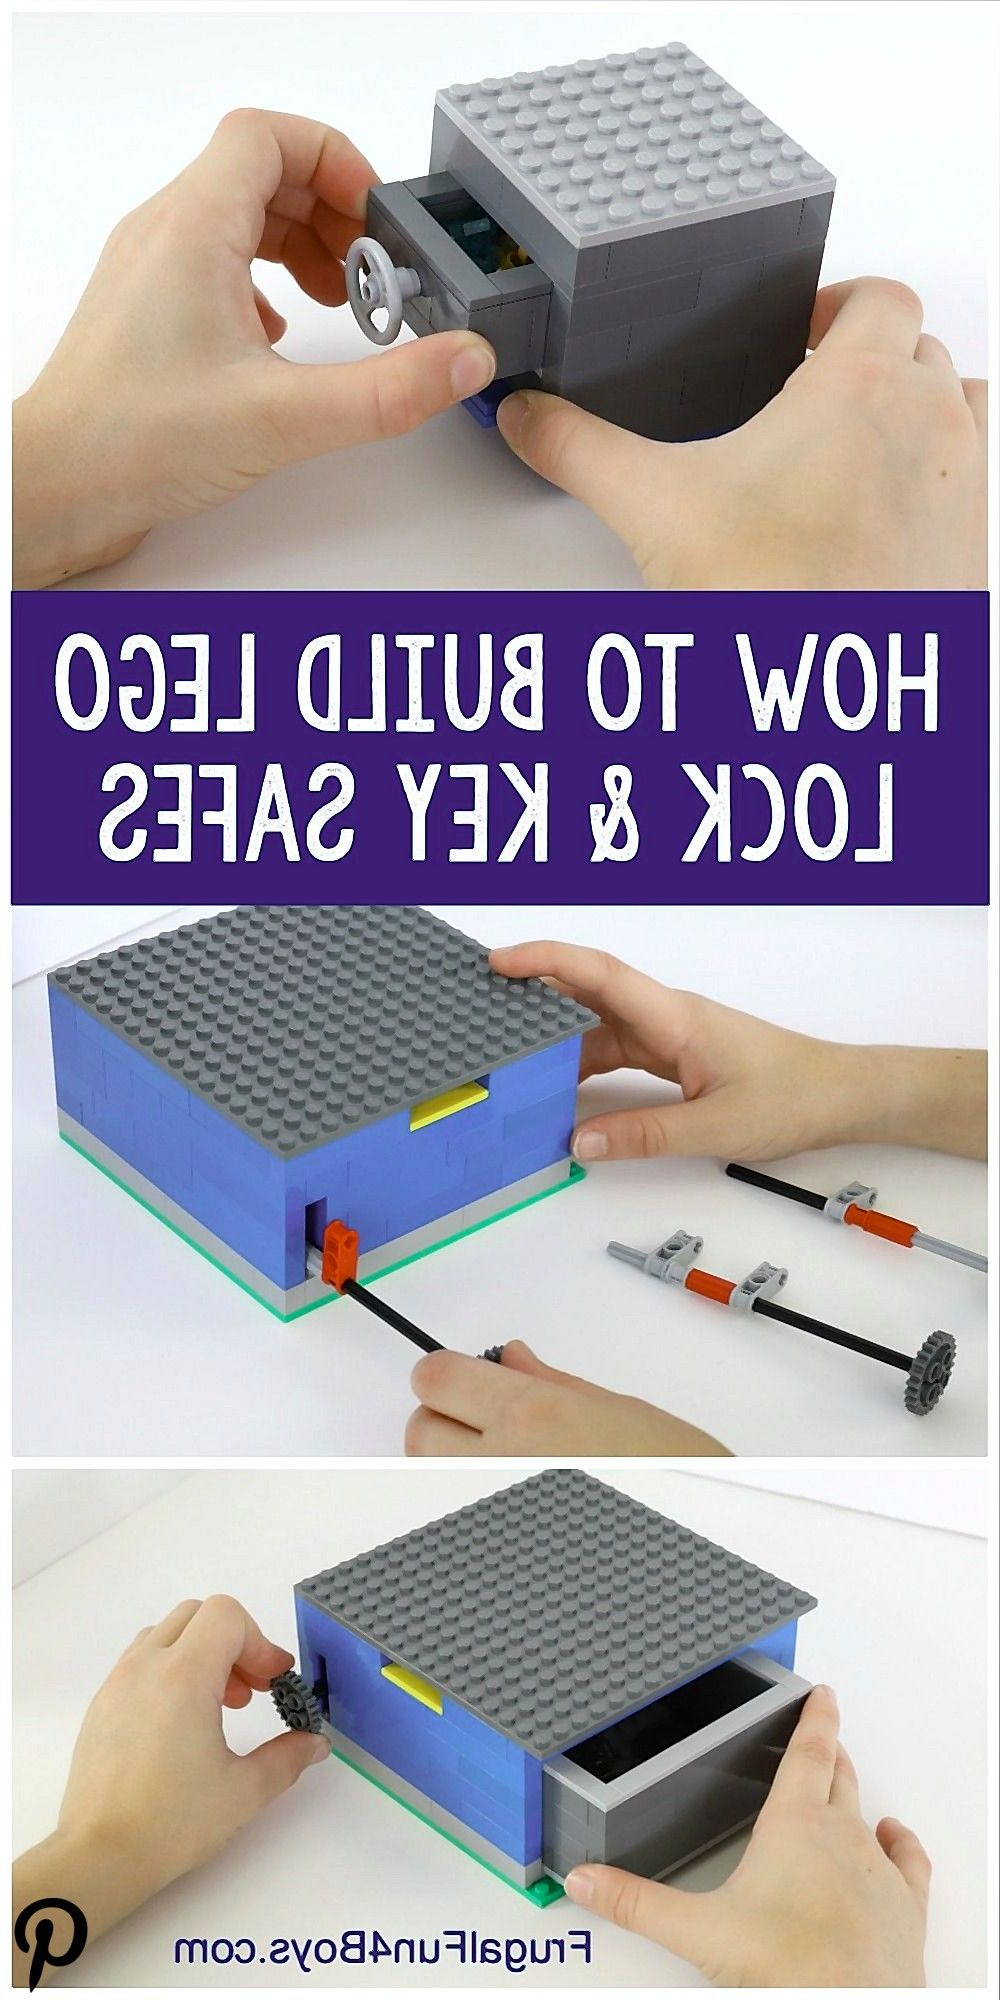 How to Build LEGO Safes with Lock  Key How to Build LEGO Safes with Lock  Key